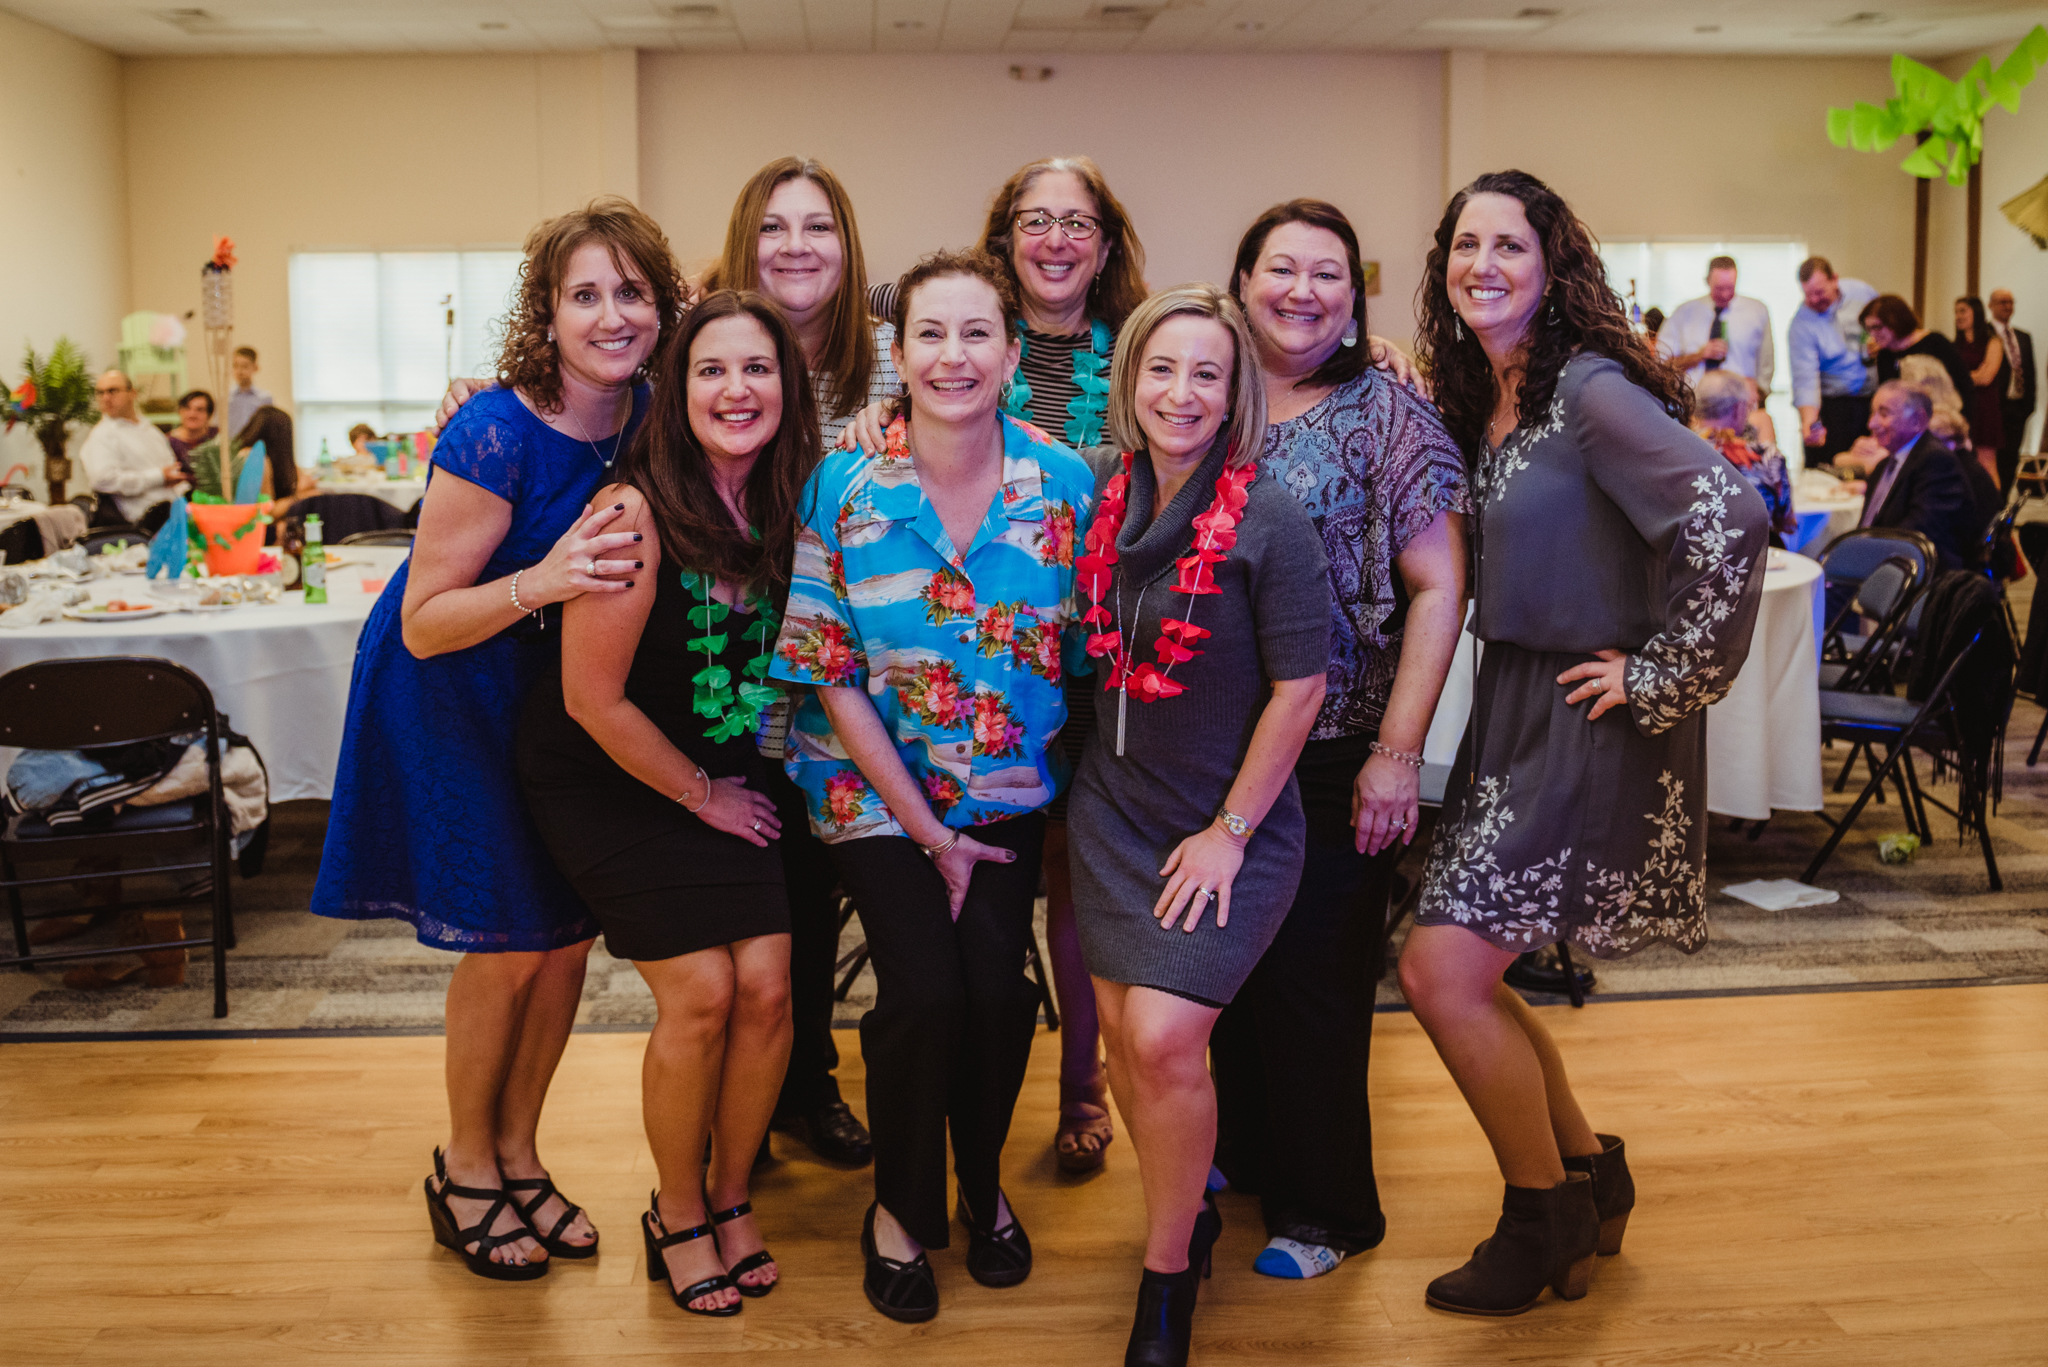 the-mitzvah-moms-strike-a-pose-during-the-celebration.jpg